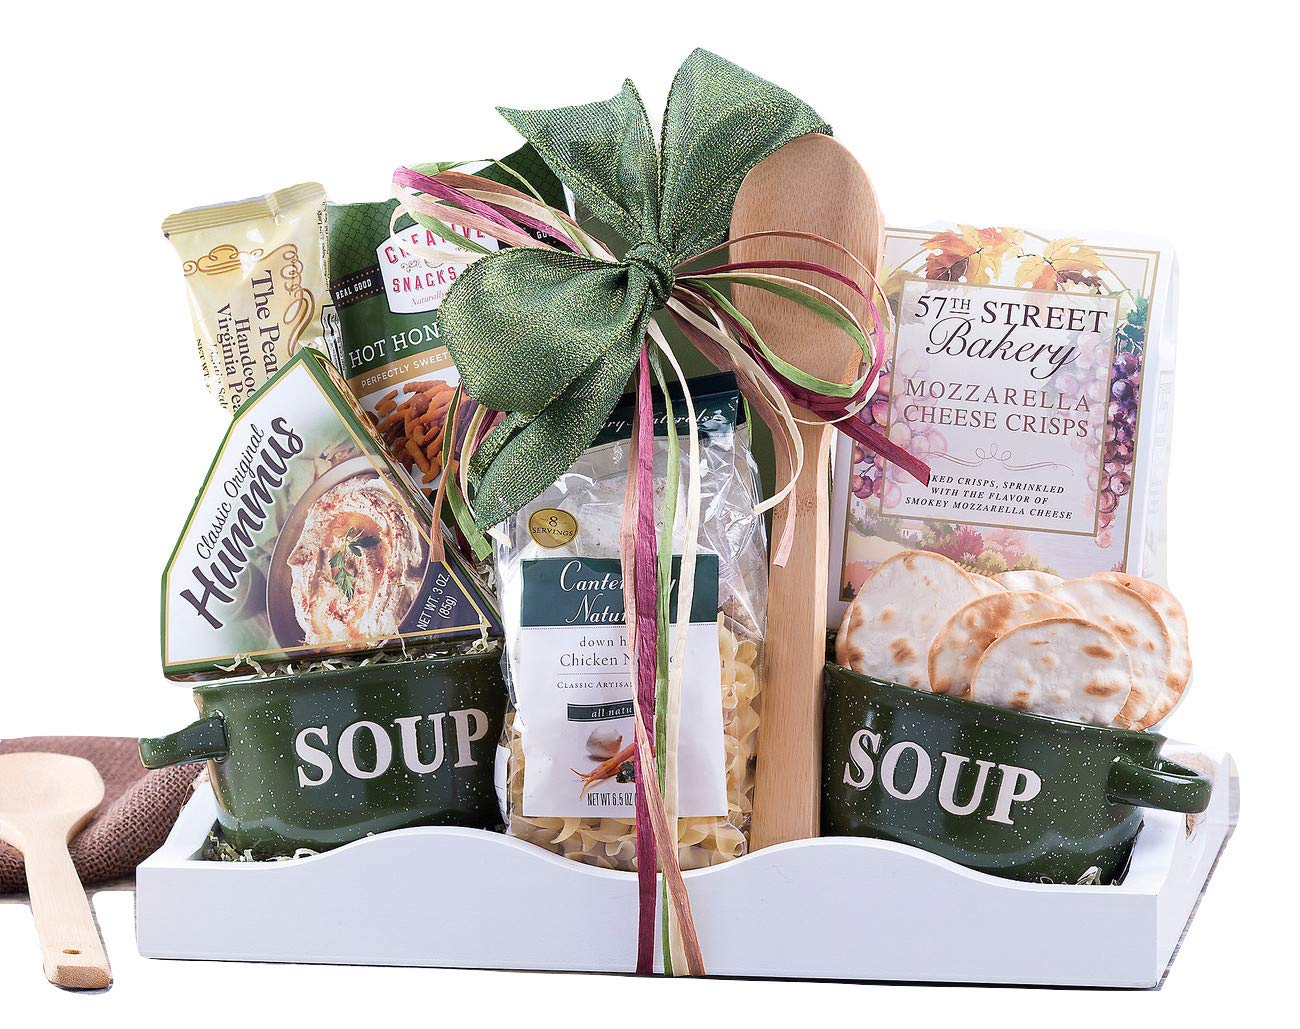 Wine Country Gift Baskets Soup's On Family Gift With Delicious Food and Old-Fashioned Comforting Chicken Soup.